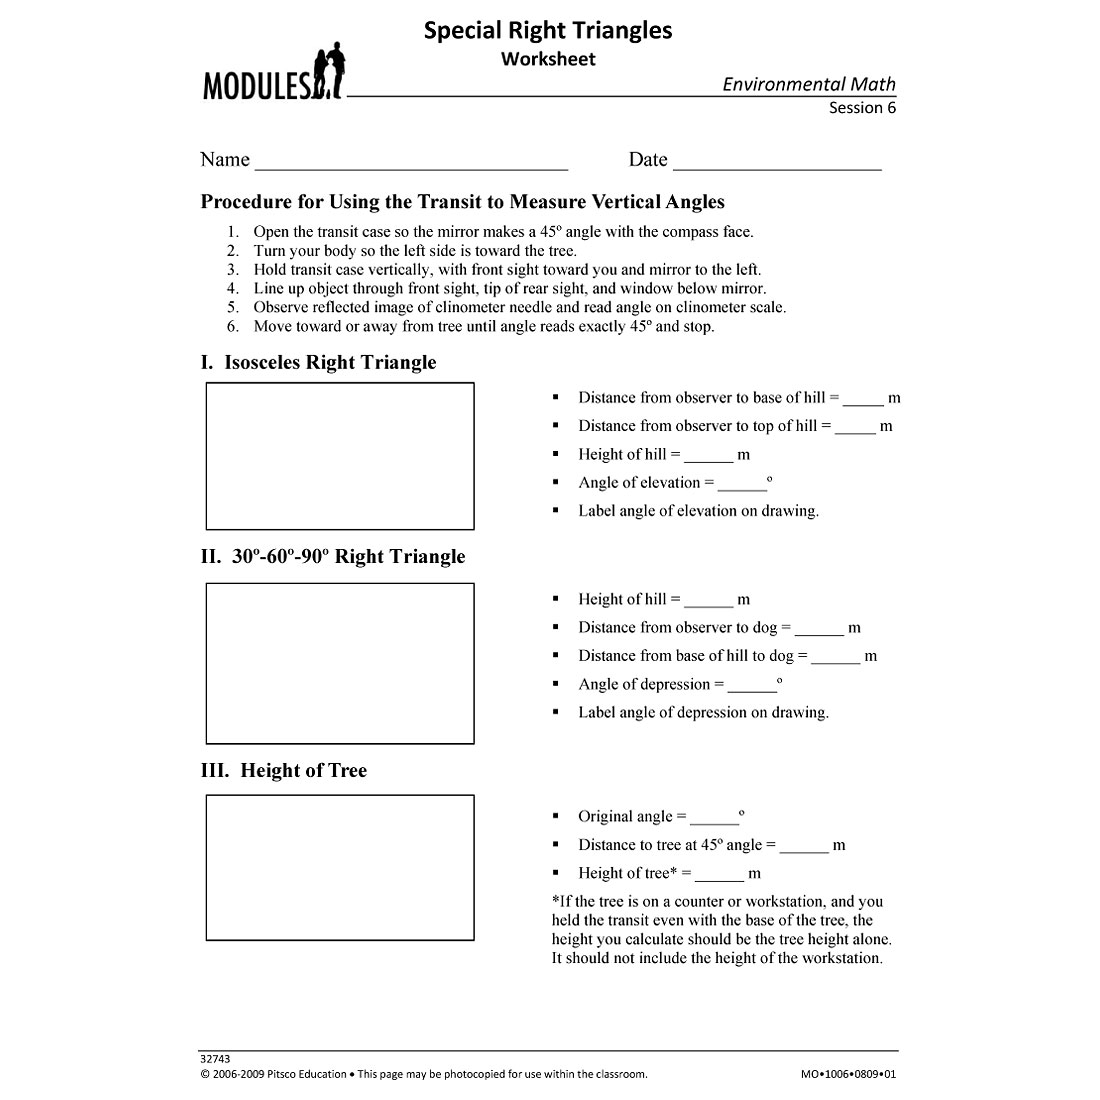 5 8 Special Right Triangles Worksheet Answers Silverwing Novel